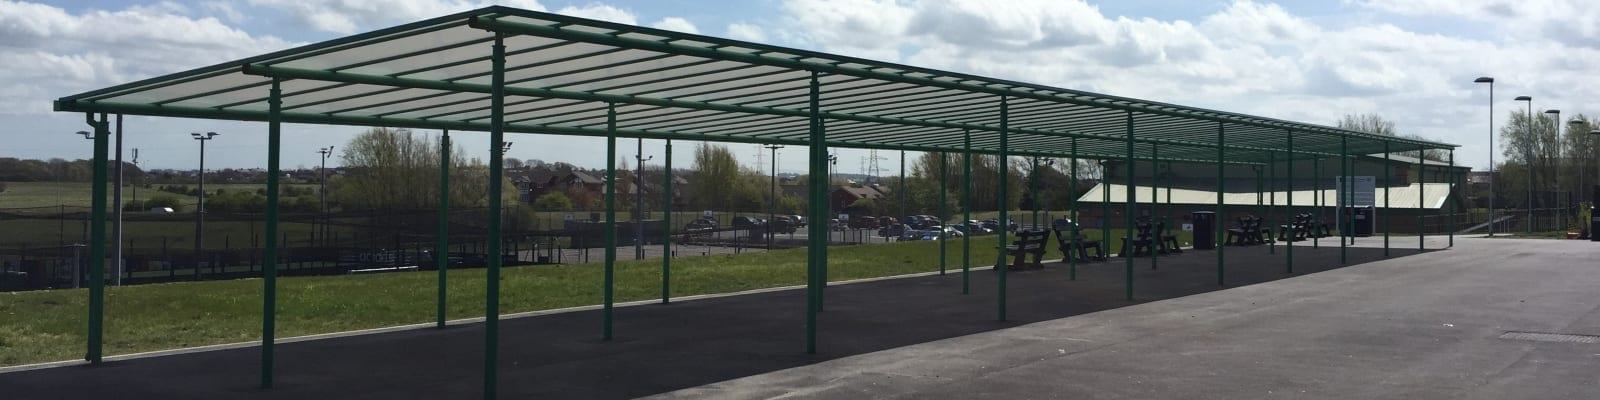 Blackpool Aspire Academy Green Shelter